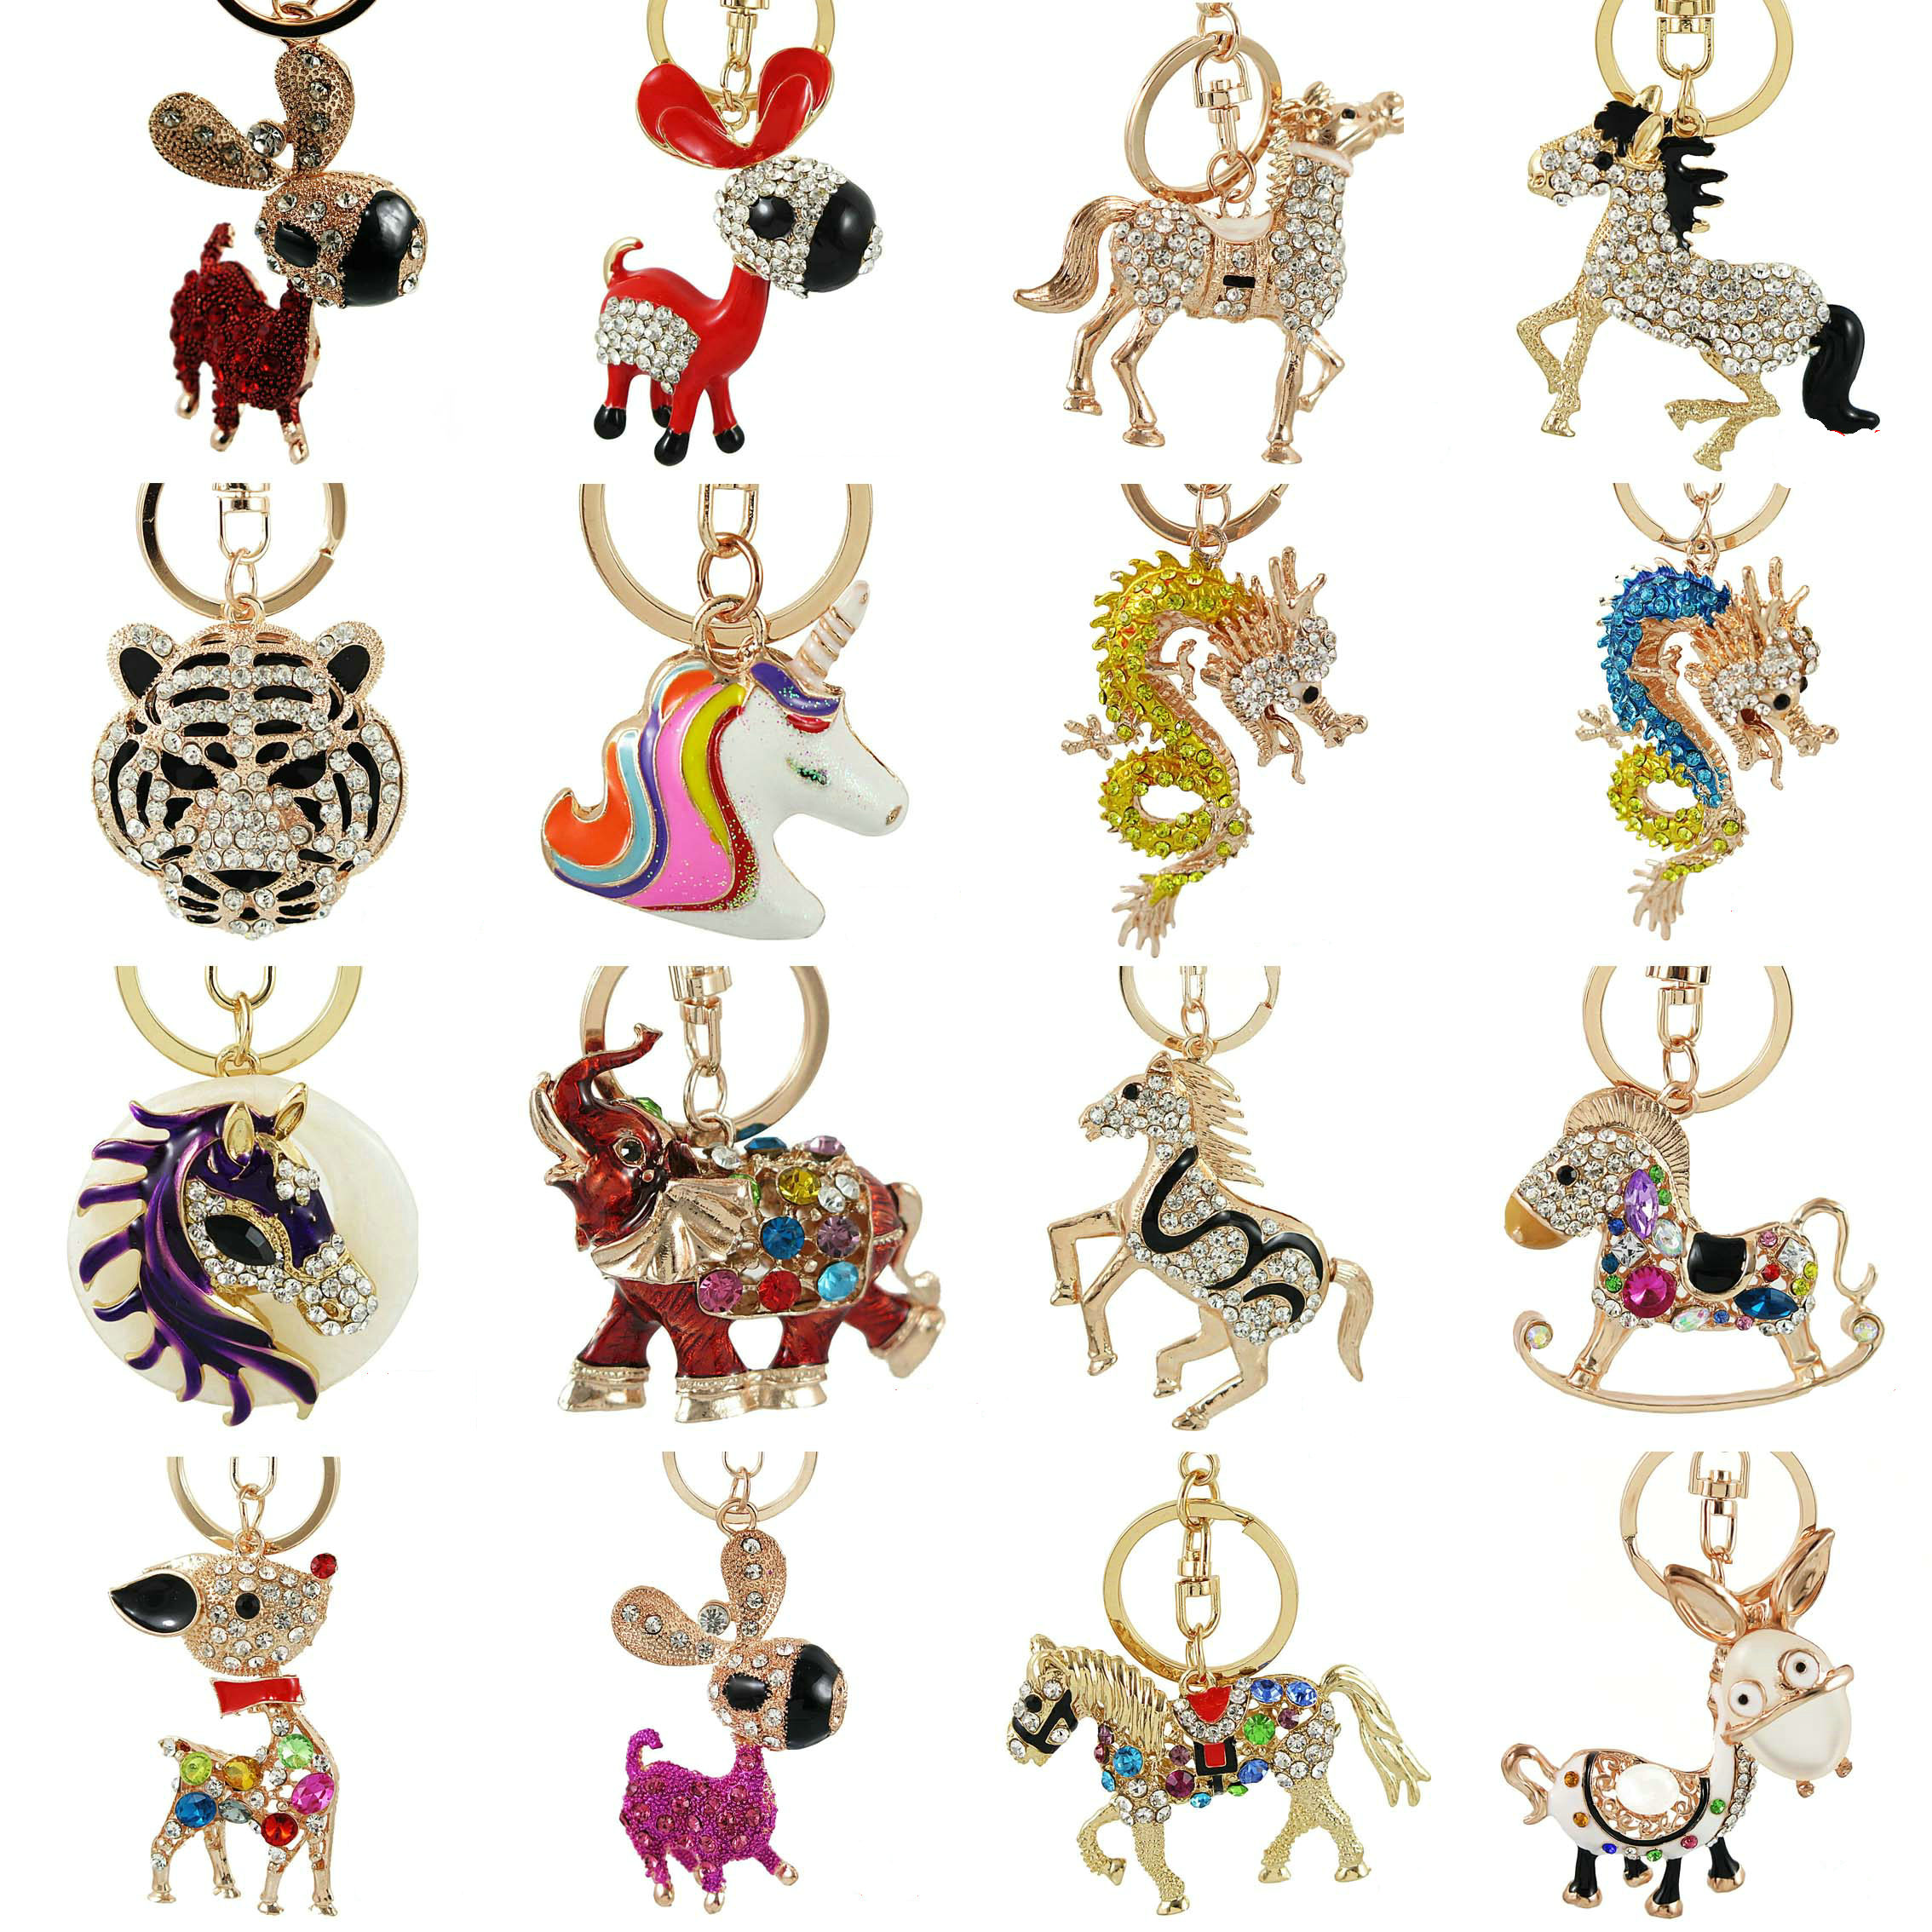 Crystal Horse Dragon Rhinestone Deer Metal Key Chains Holder HandBag Pendant Fashion Keyrings Keychains For Car Best Gift